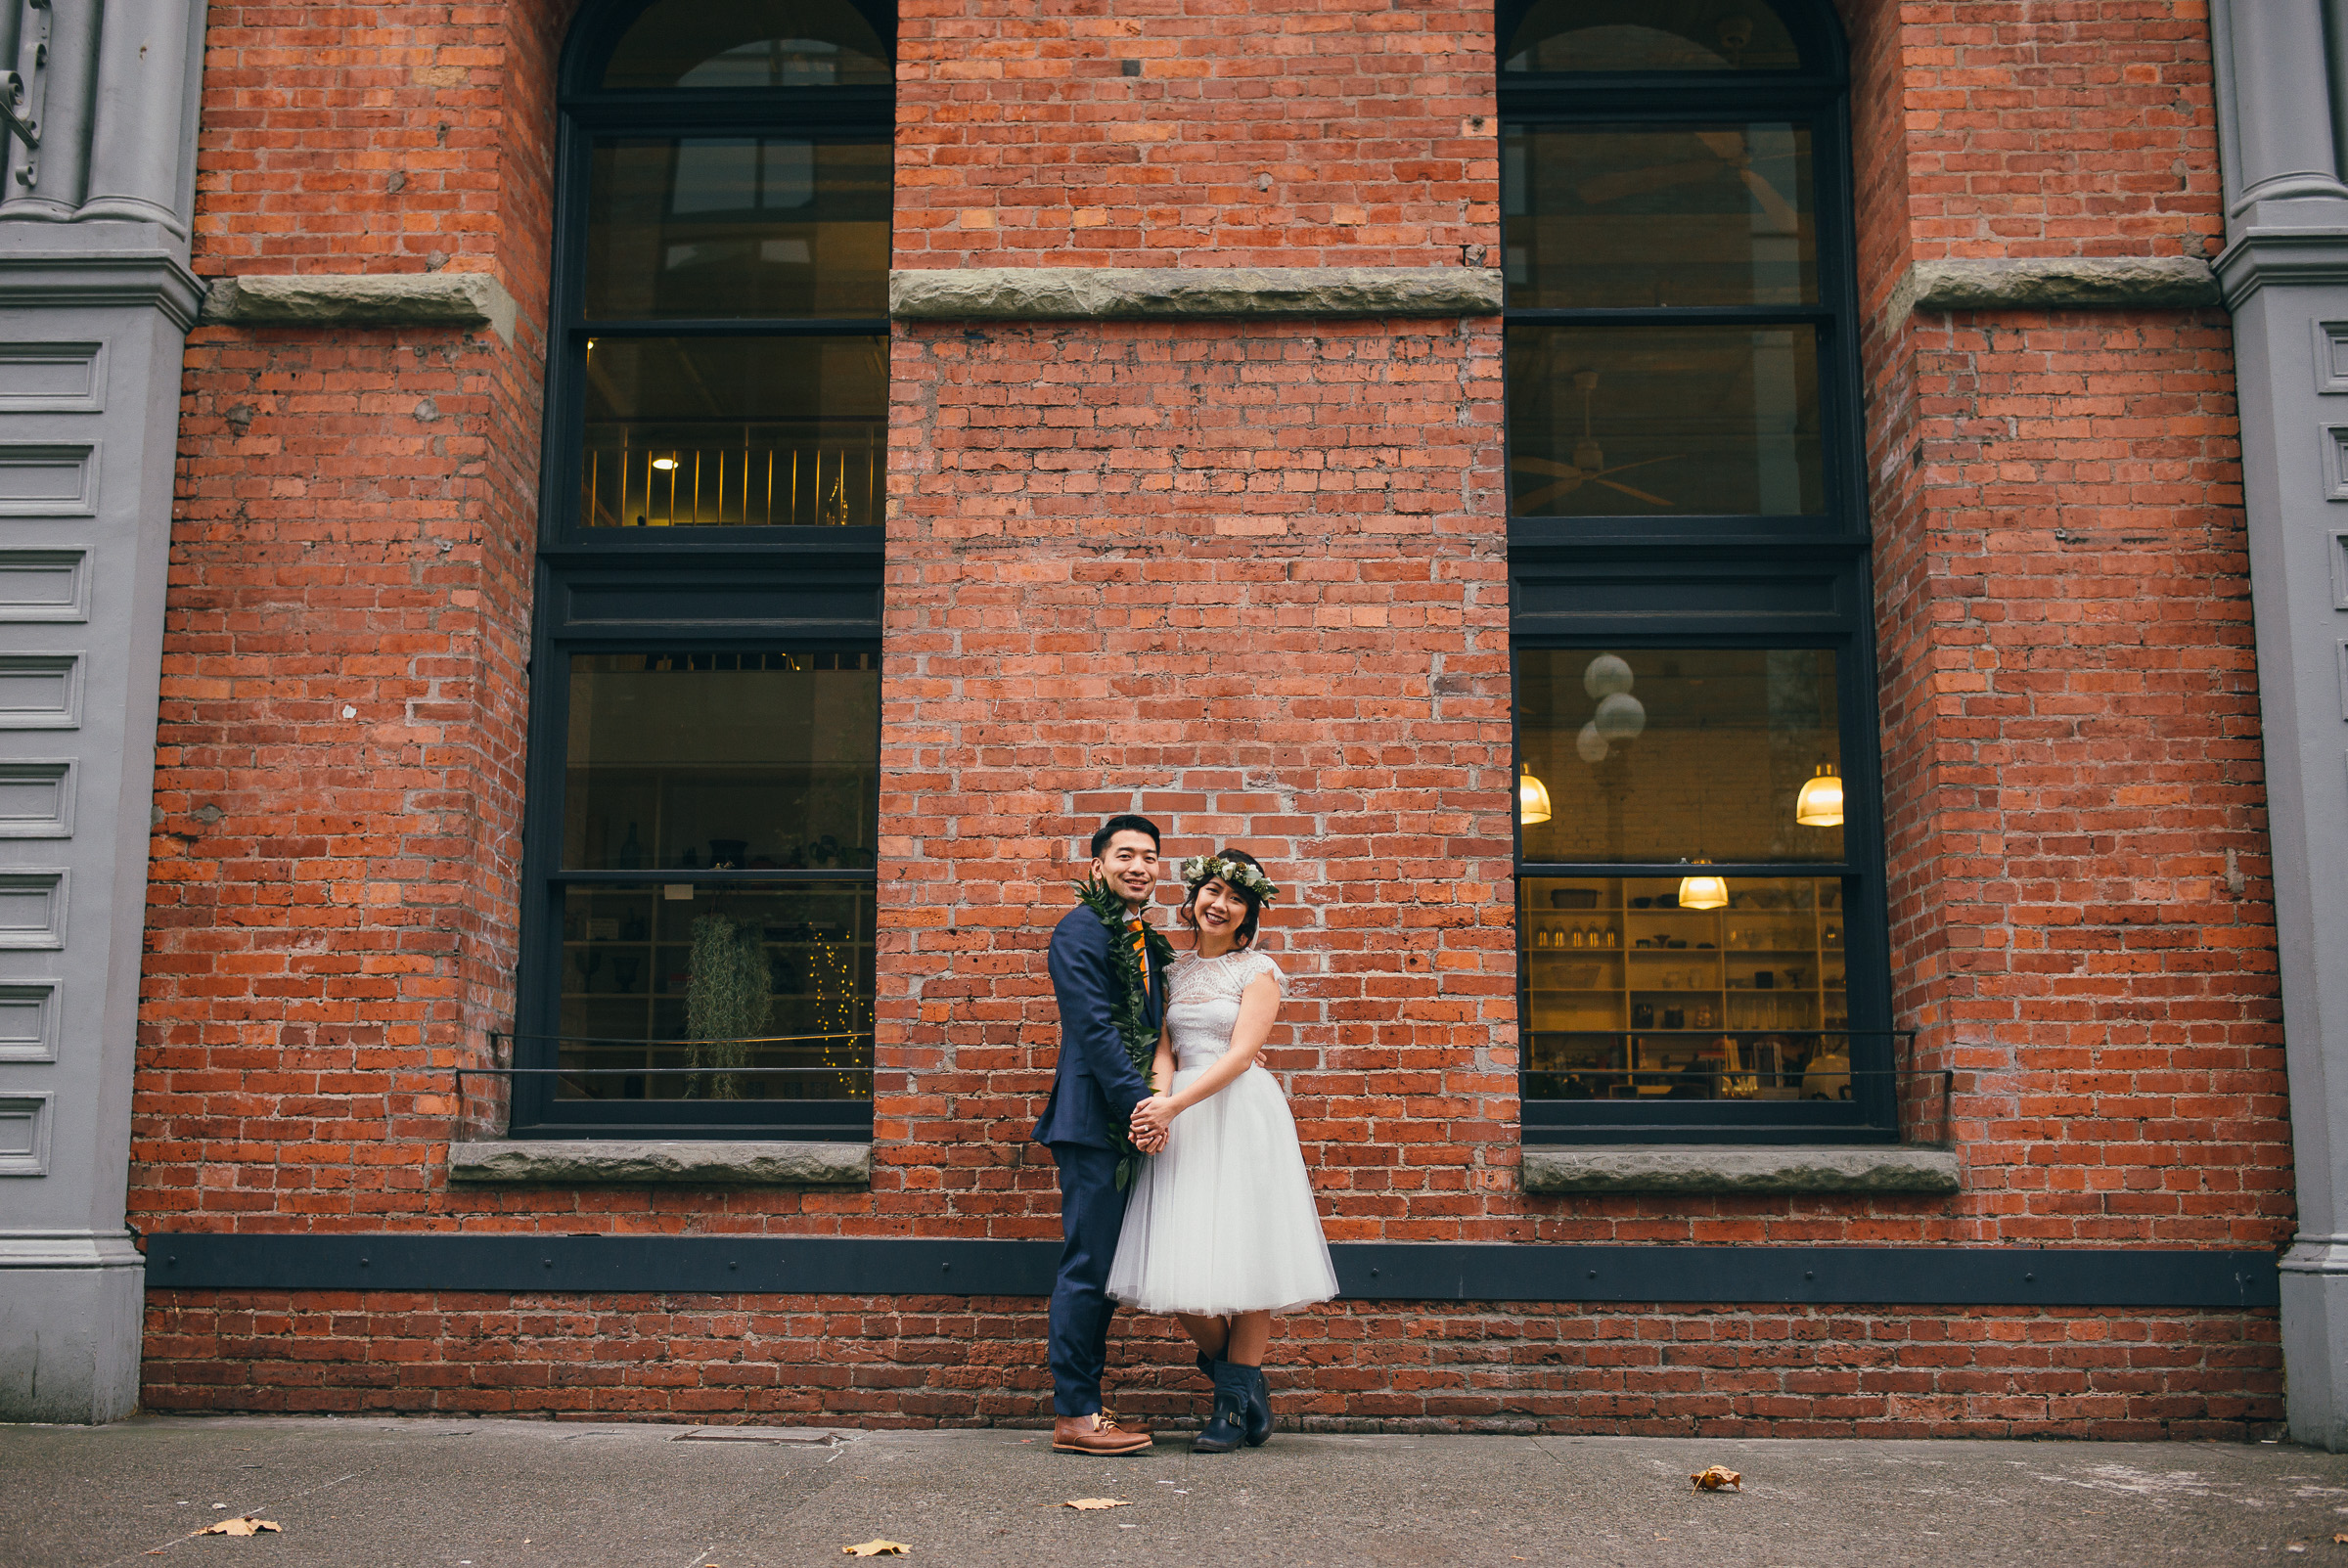 Bride and Groom Portrait on their Wedding Day in Seattle